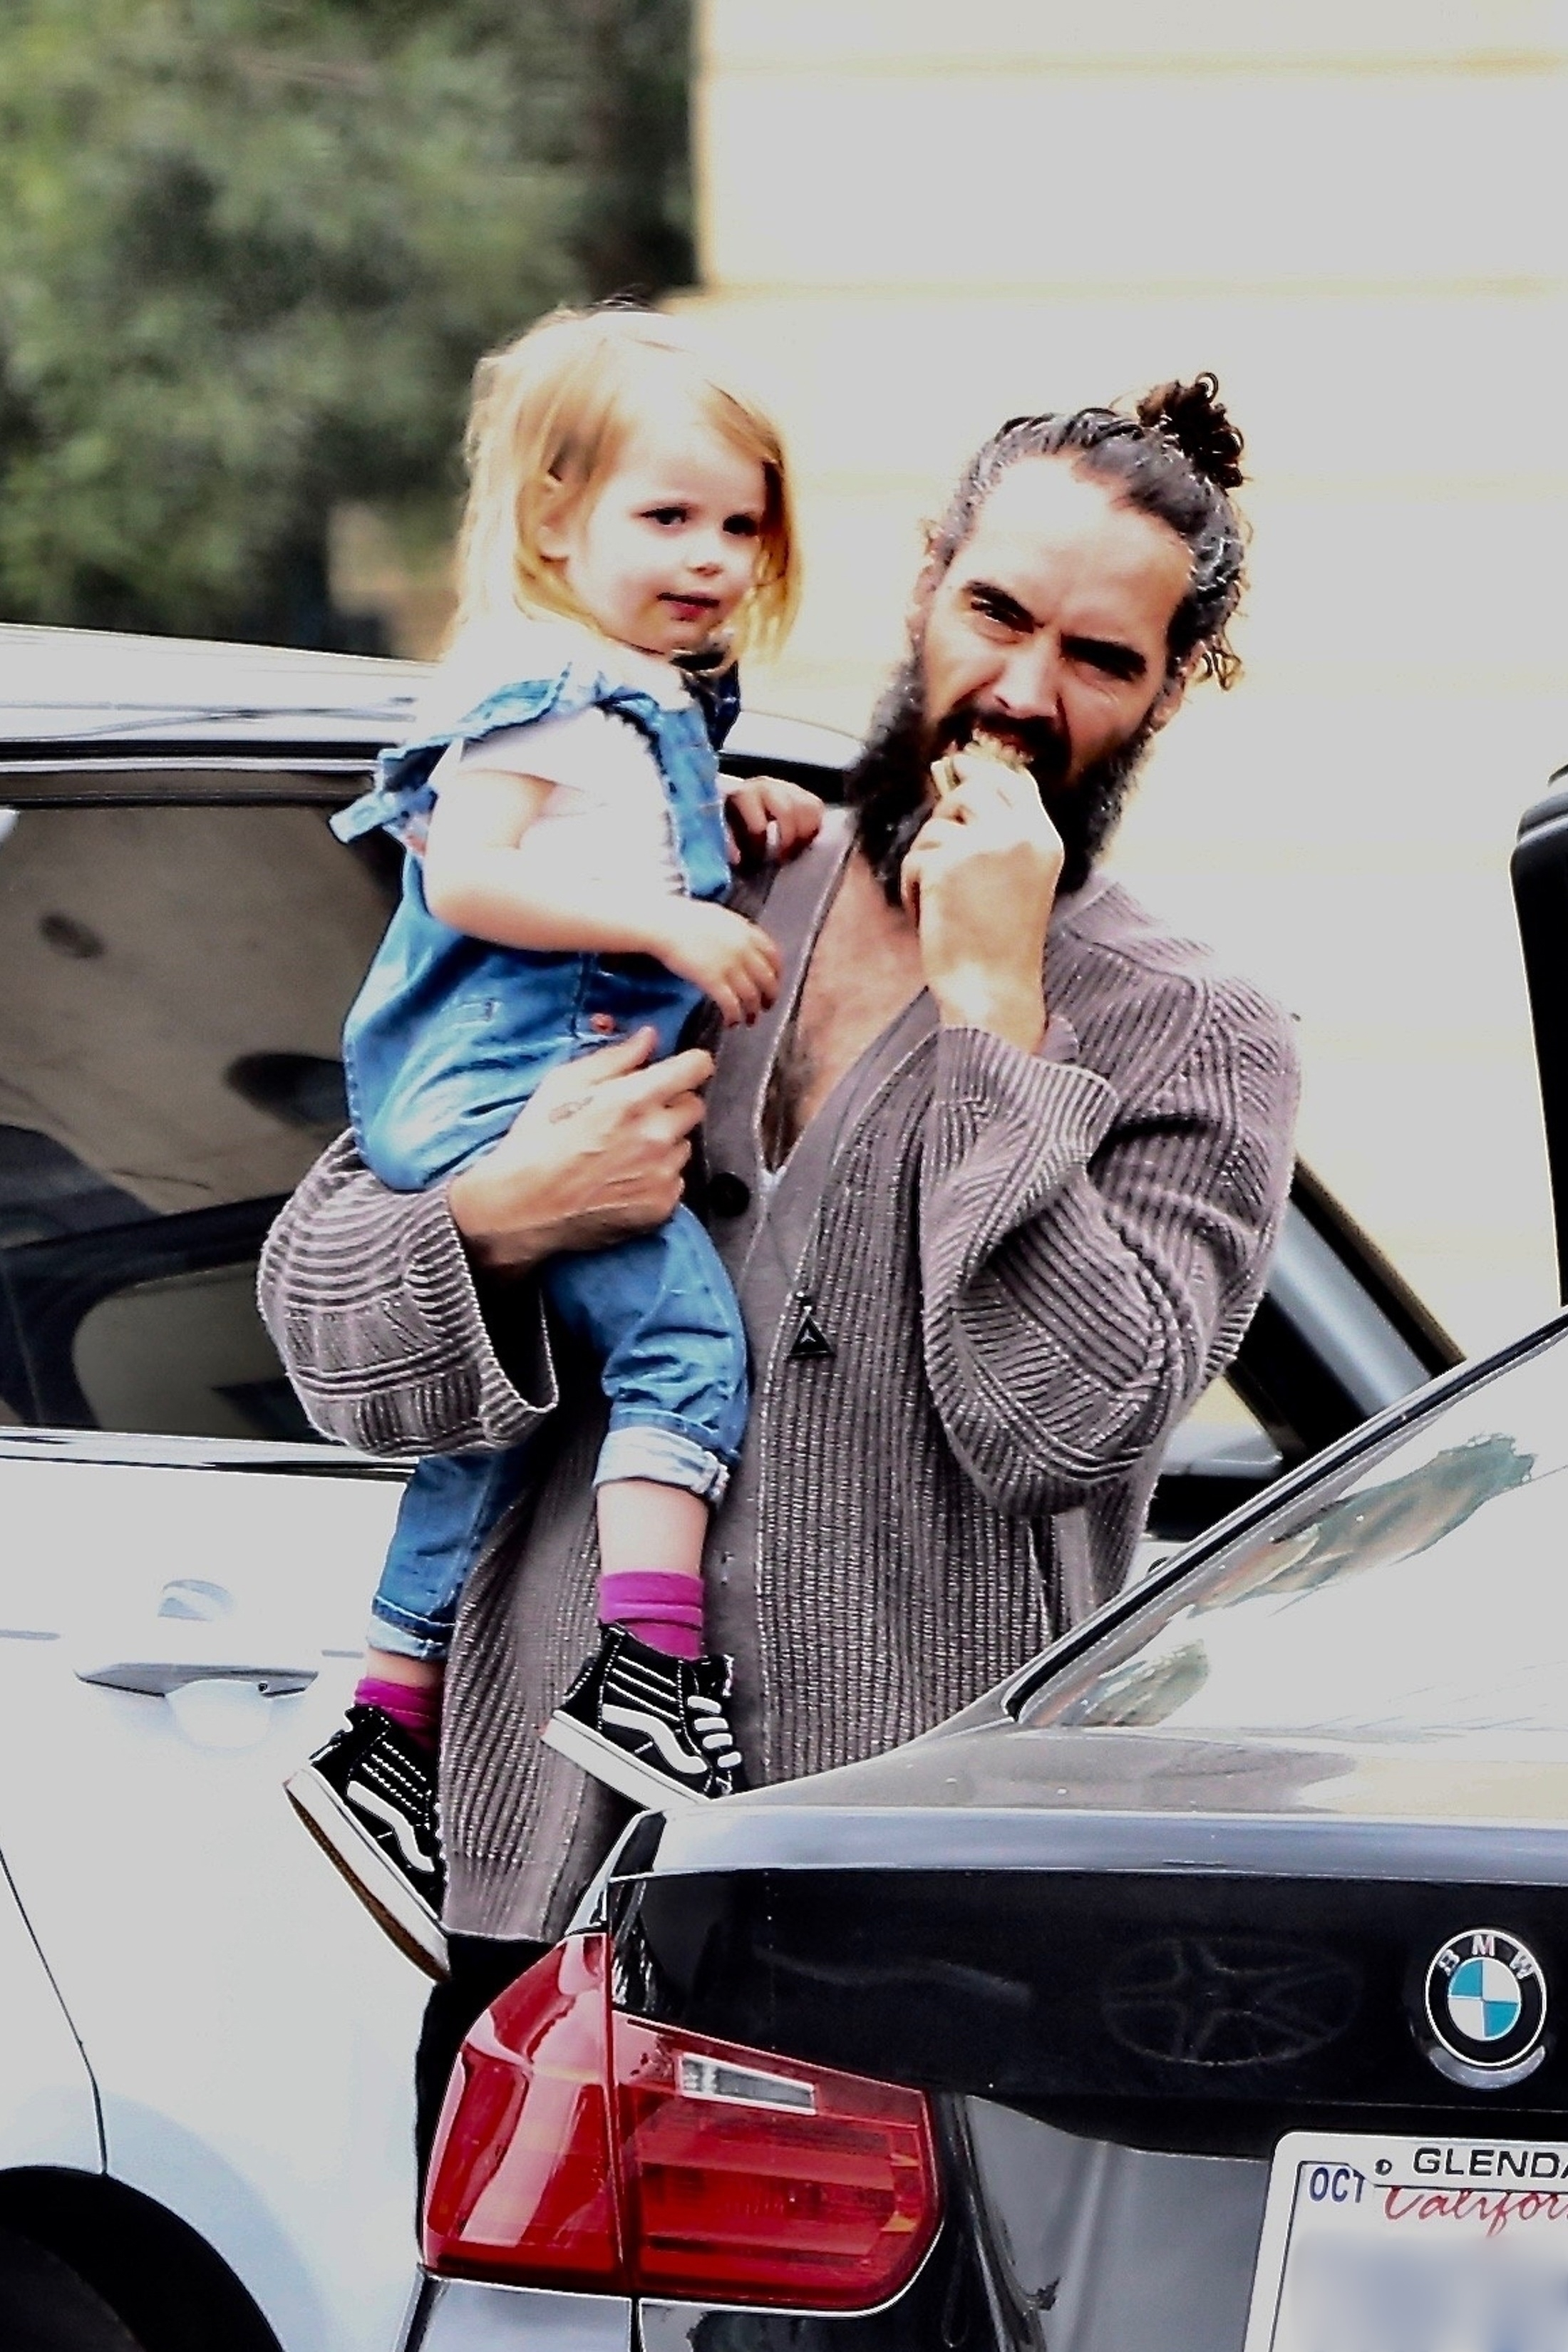 Russell Brand was seen carrying his daughter, Mabel, to lunch in the Los Feliz section of Los Angeles on April 20, 2019.